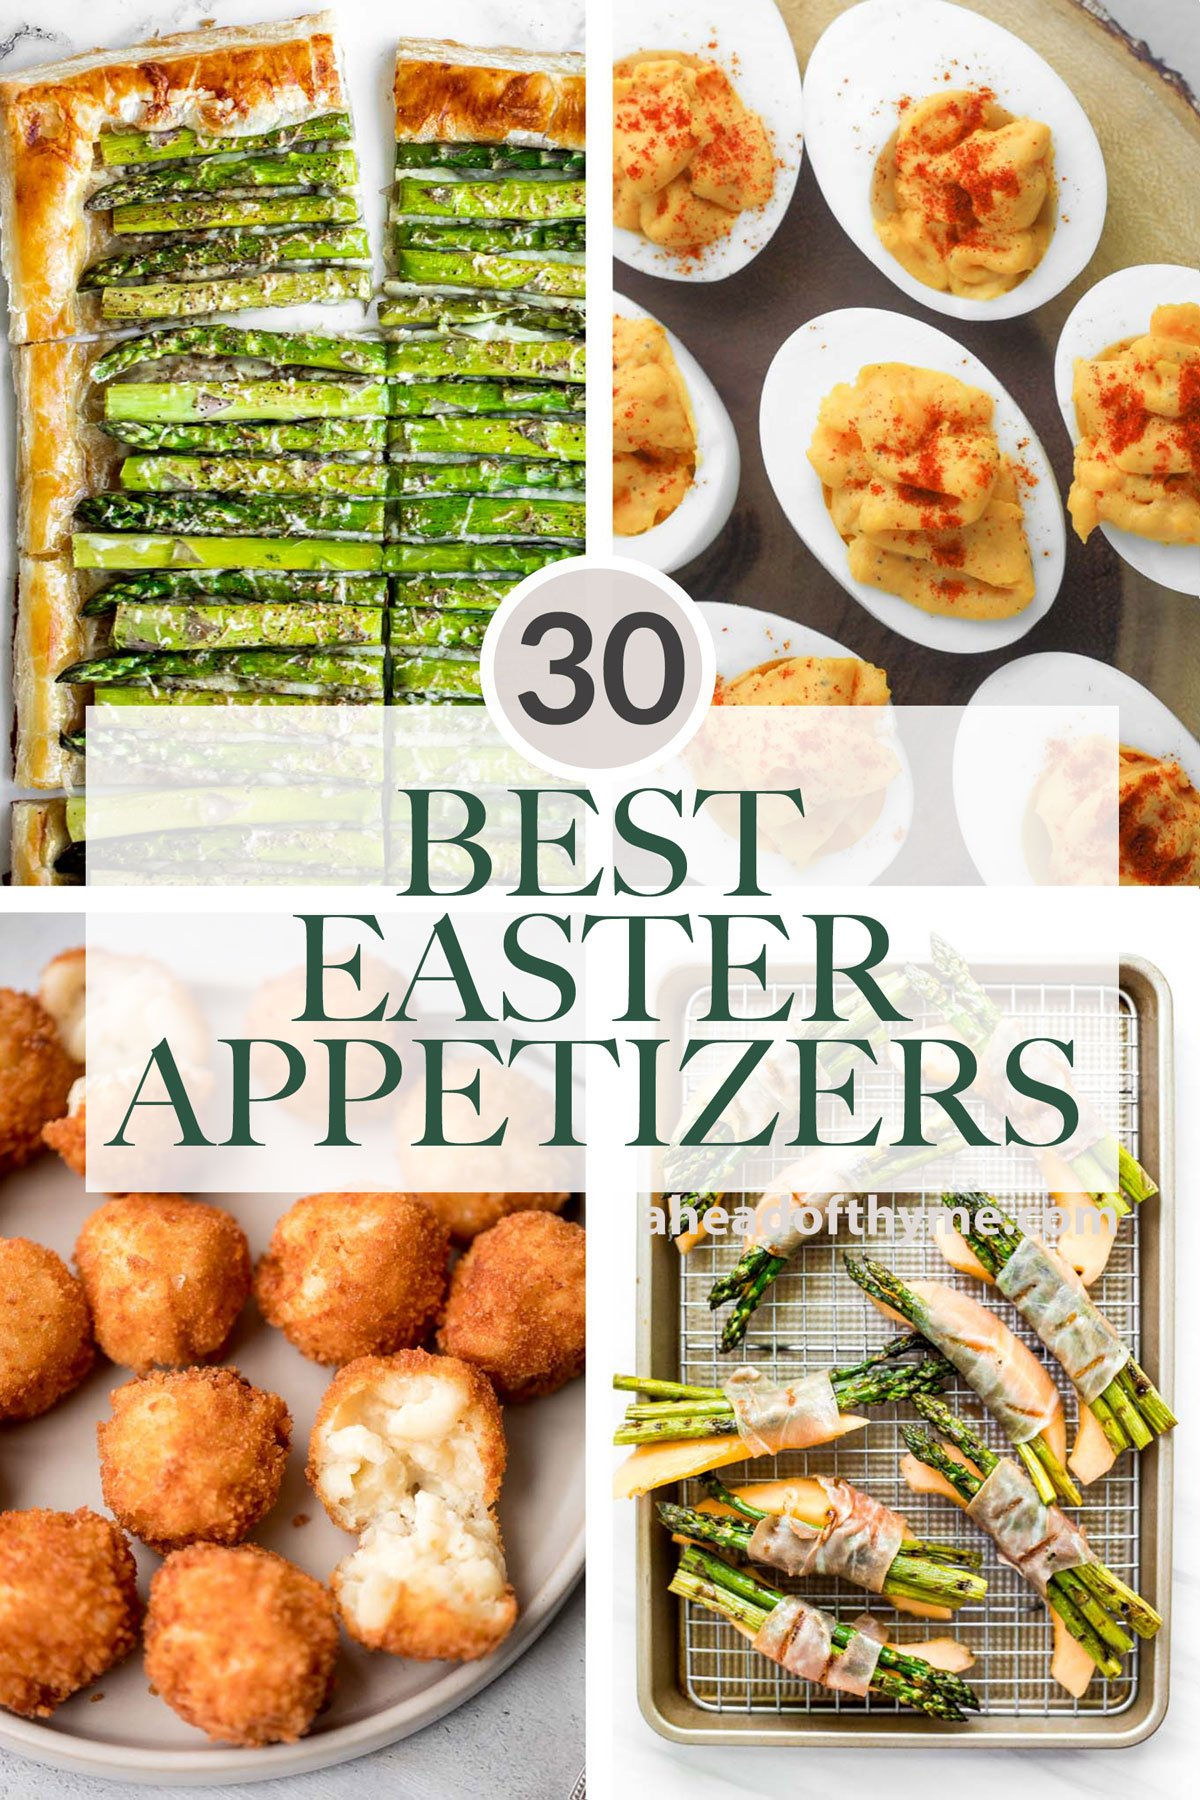 30 Best Easter Appetizers